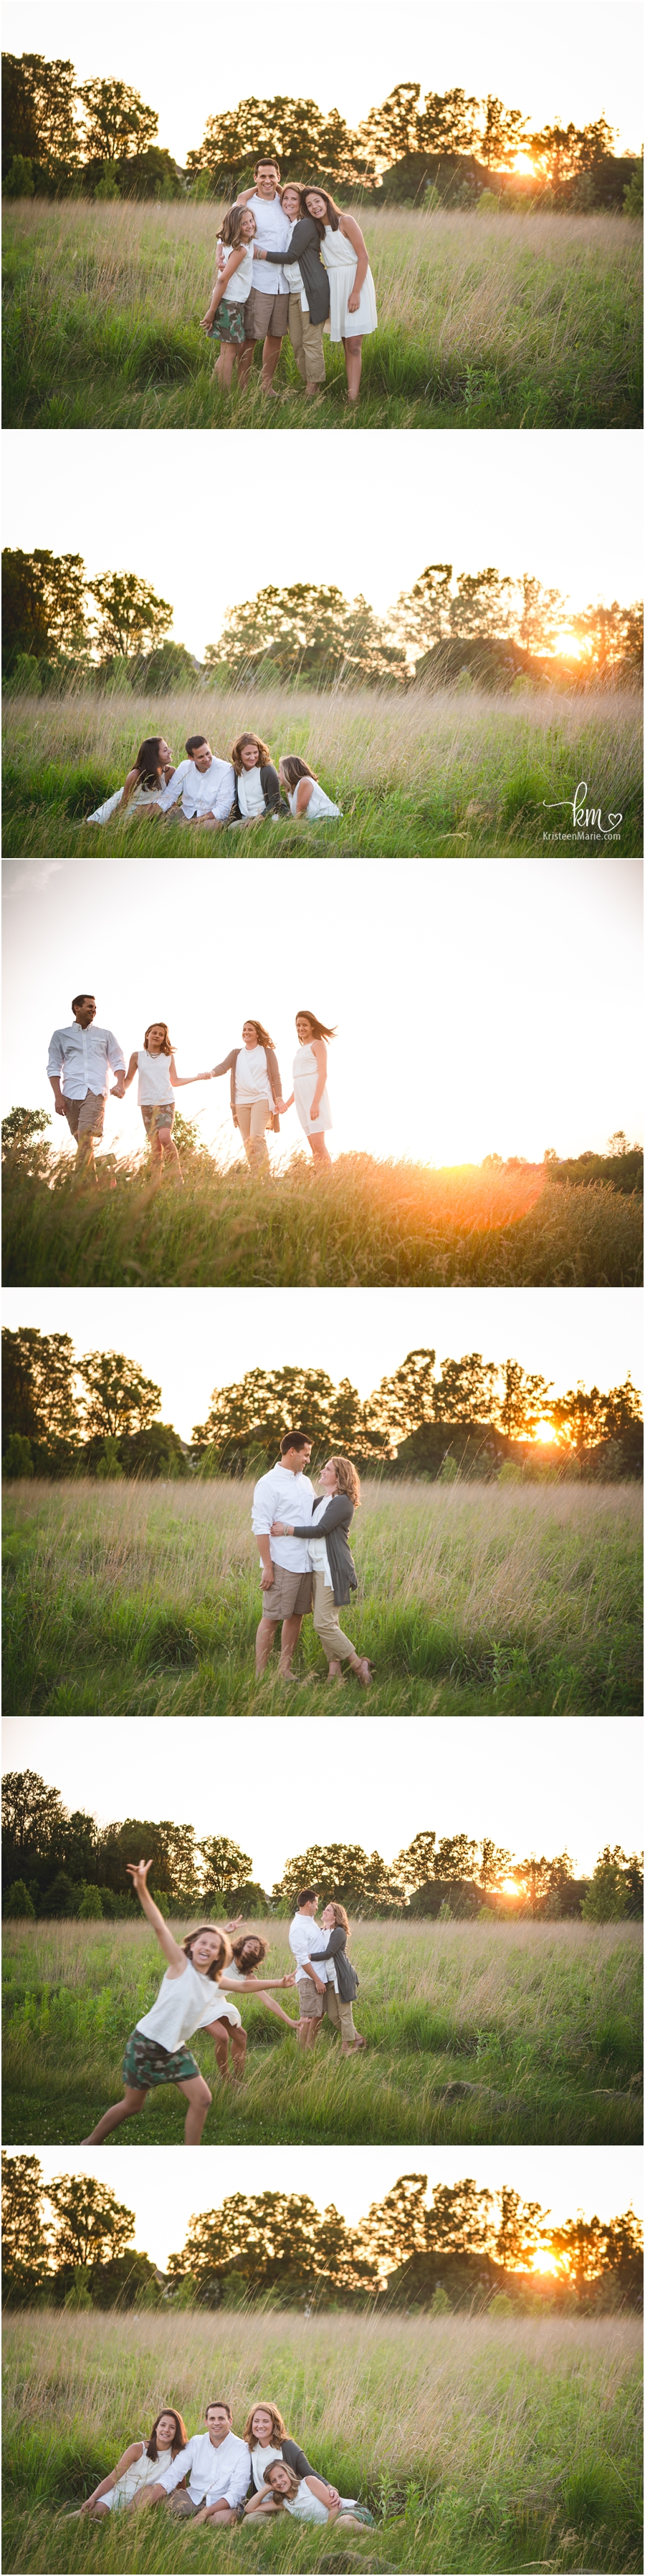 sunset family photography - great pictures to take at sunset in a field